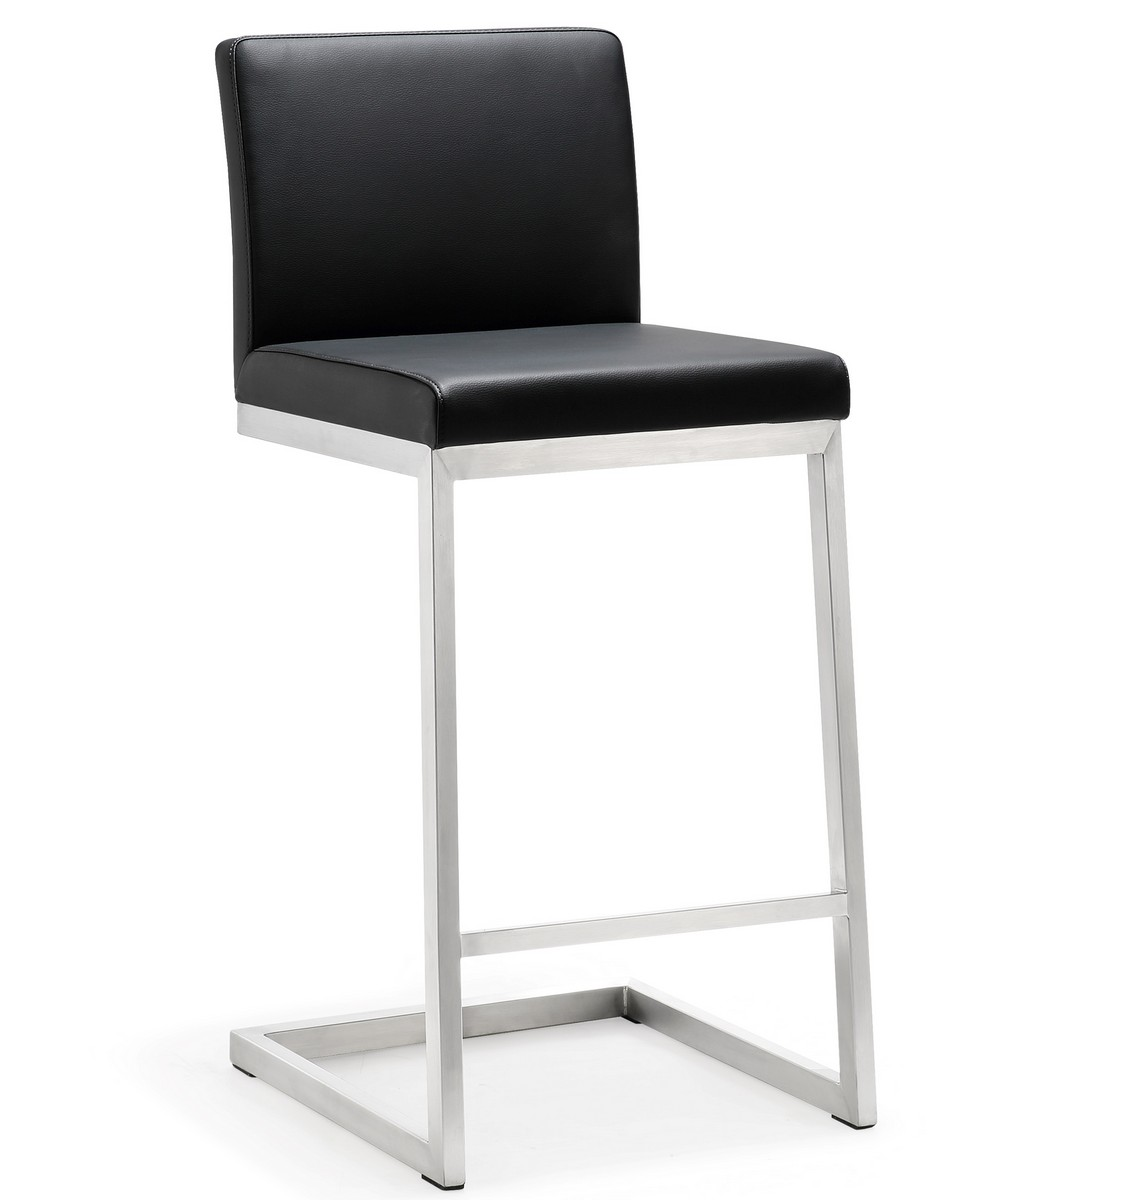 TOV Furniture Parma Black Stainless Steel Counter Stool - Set of 2